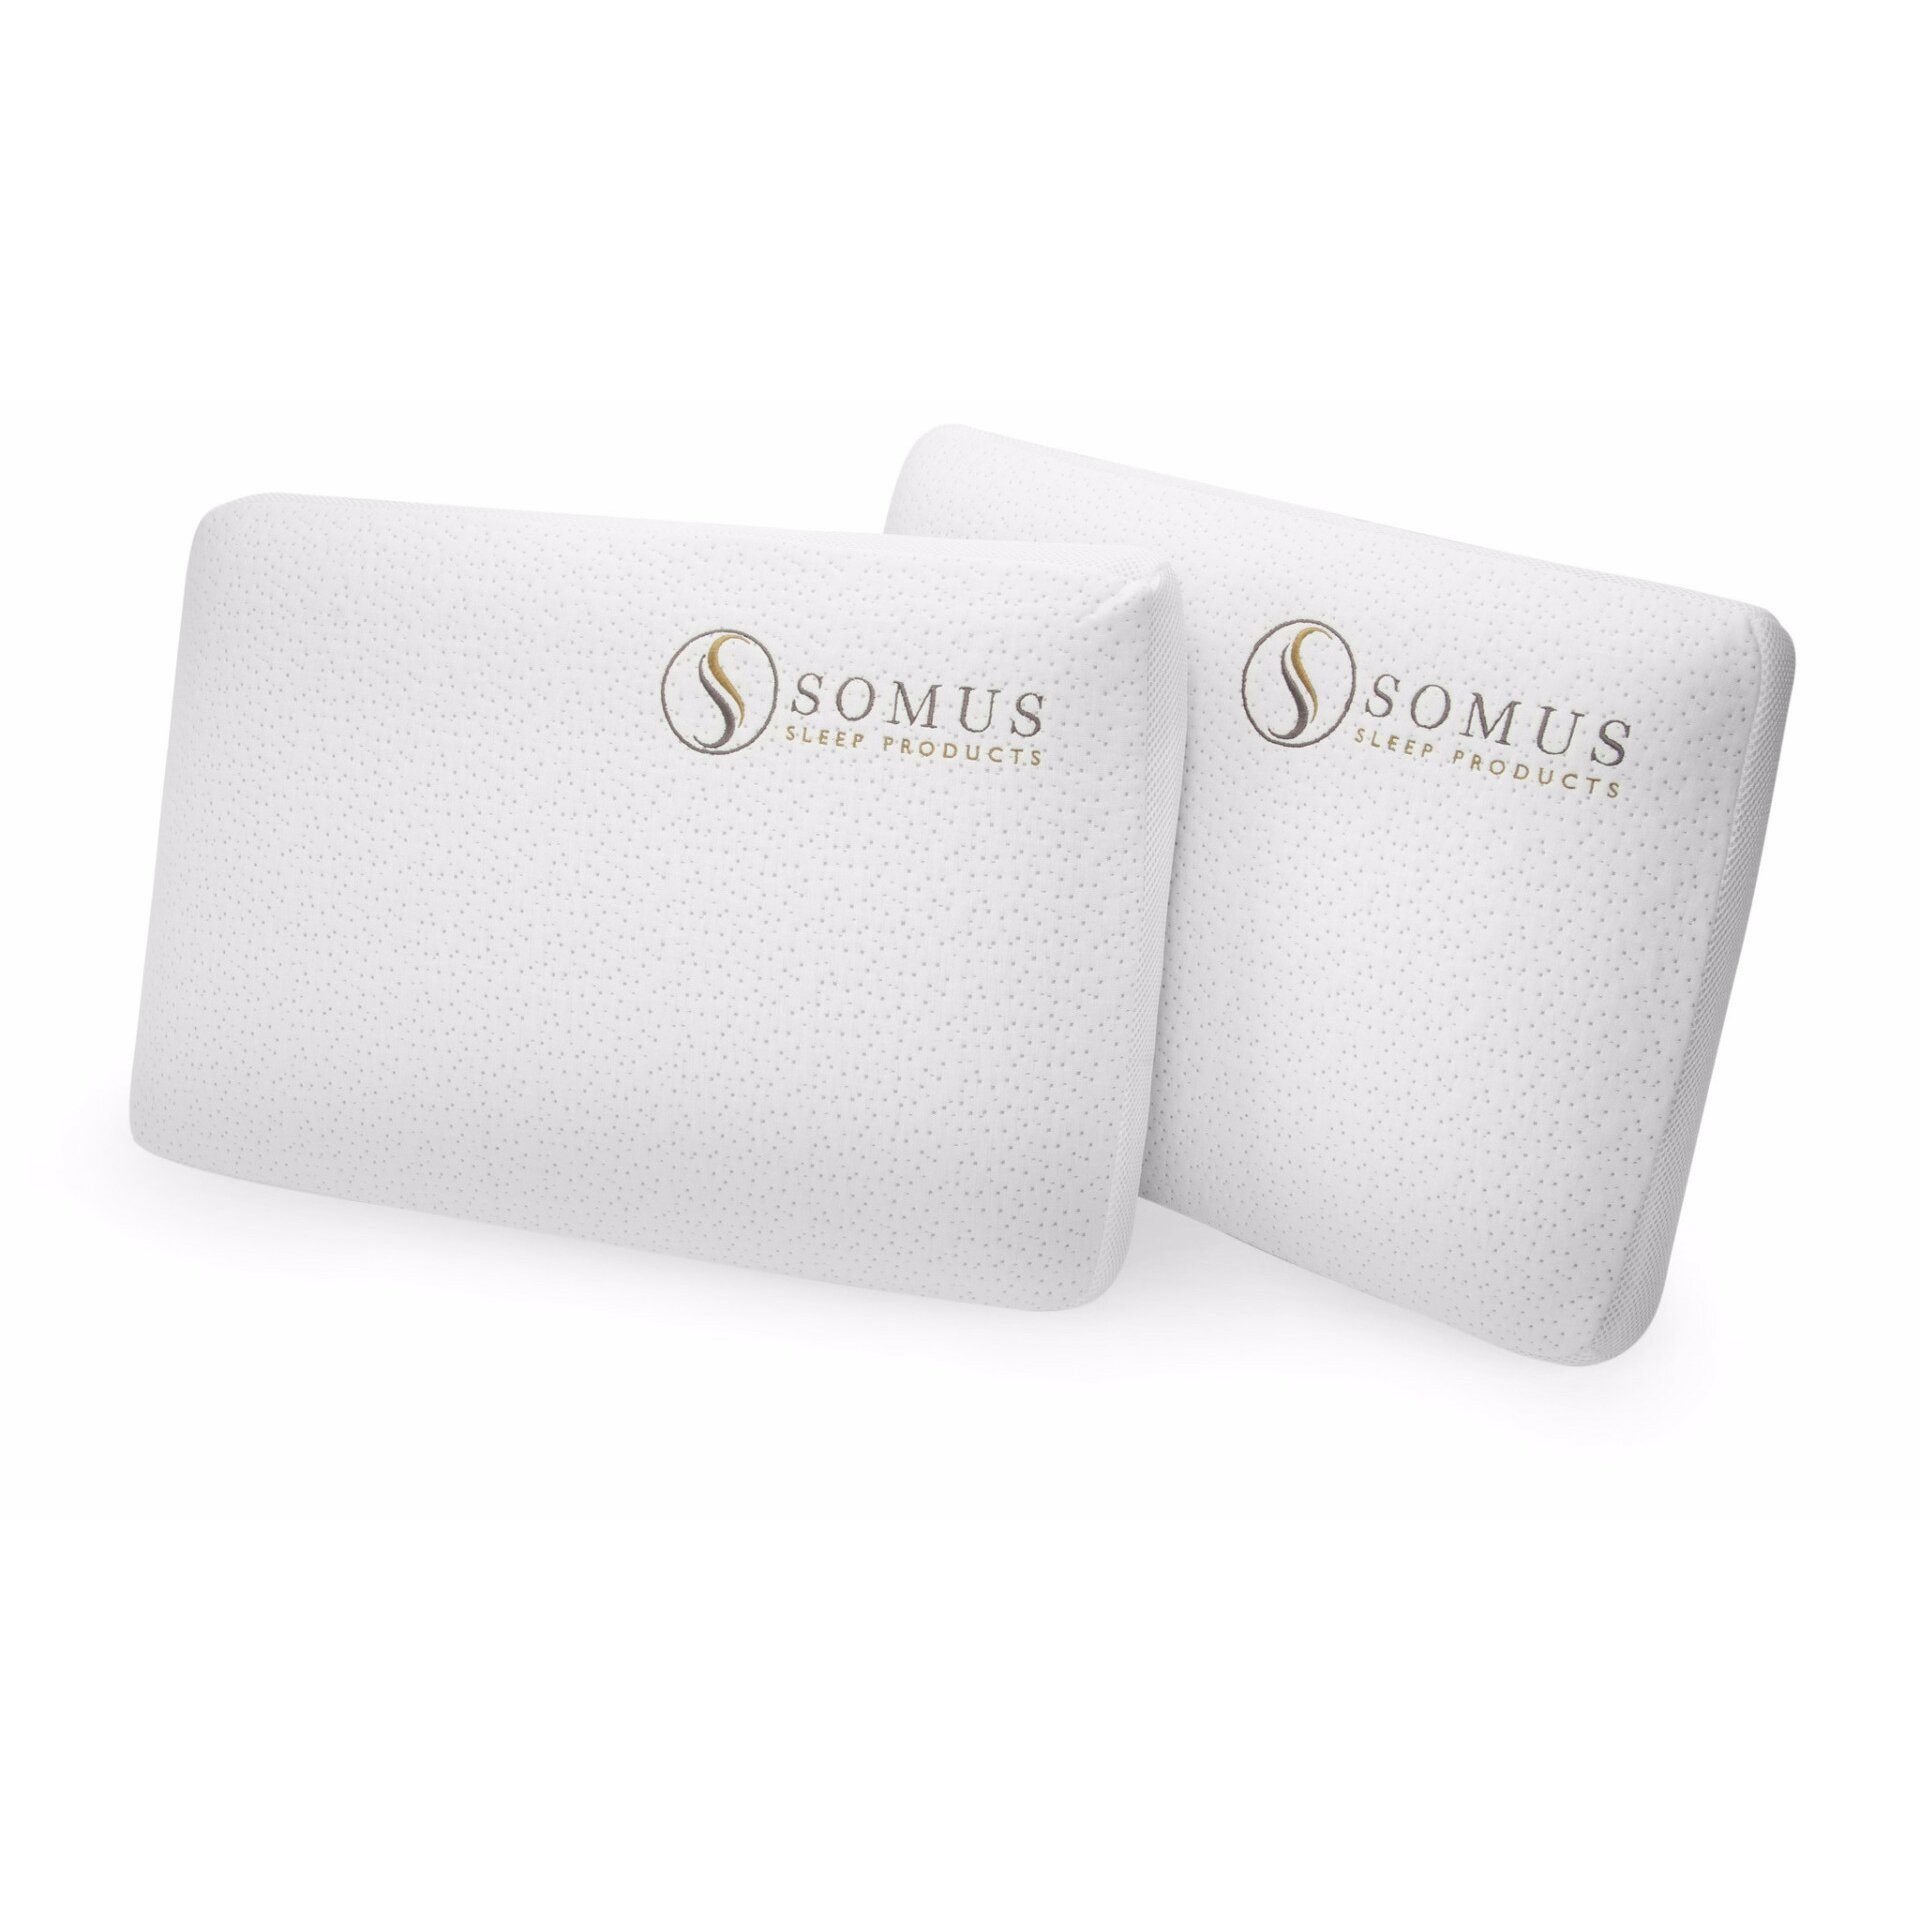 Somus Somus Supreme Memory Foam Pillow & Reviews Wayfair